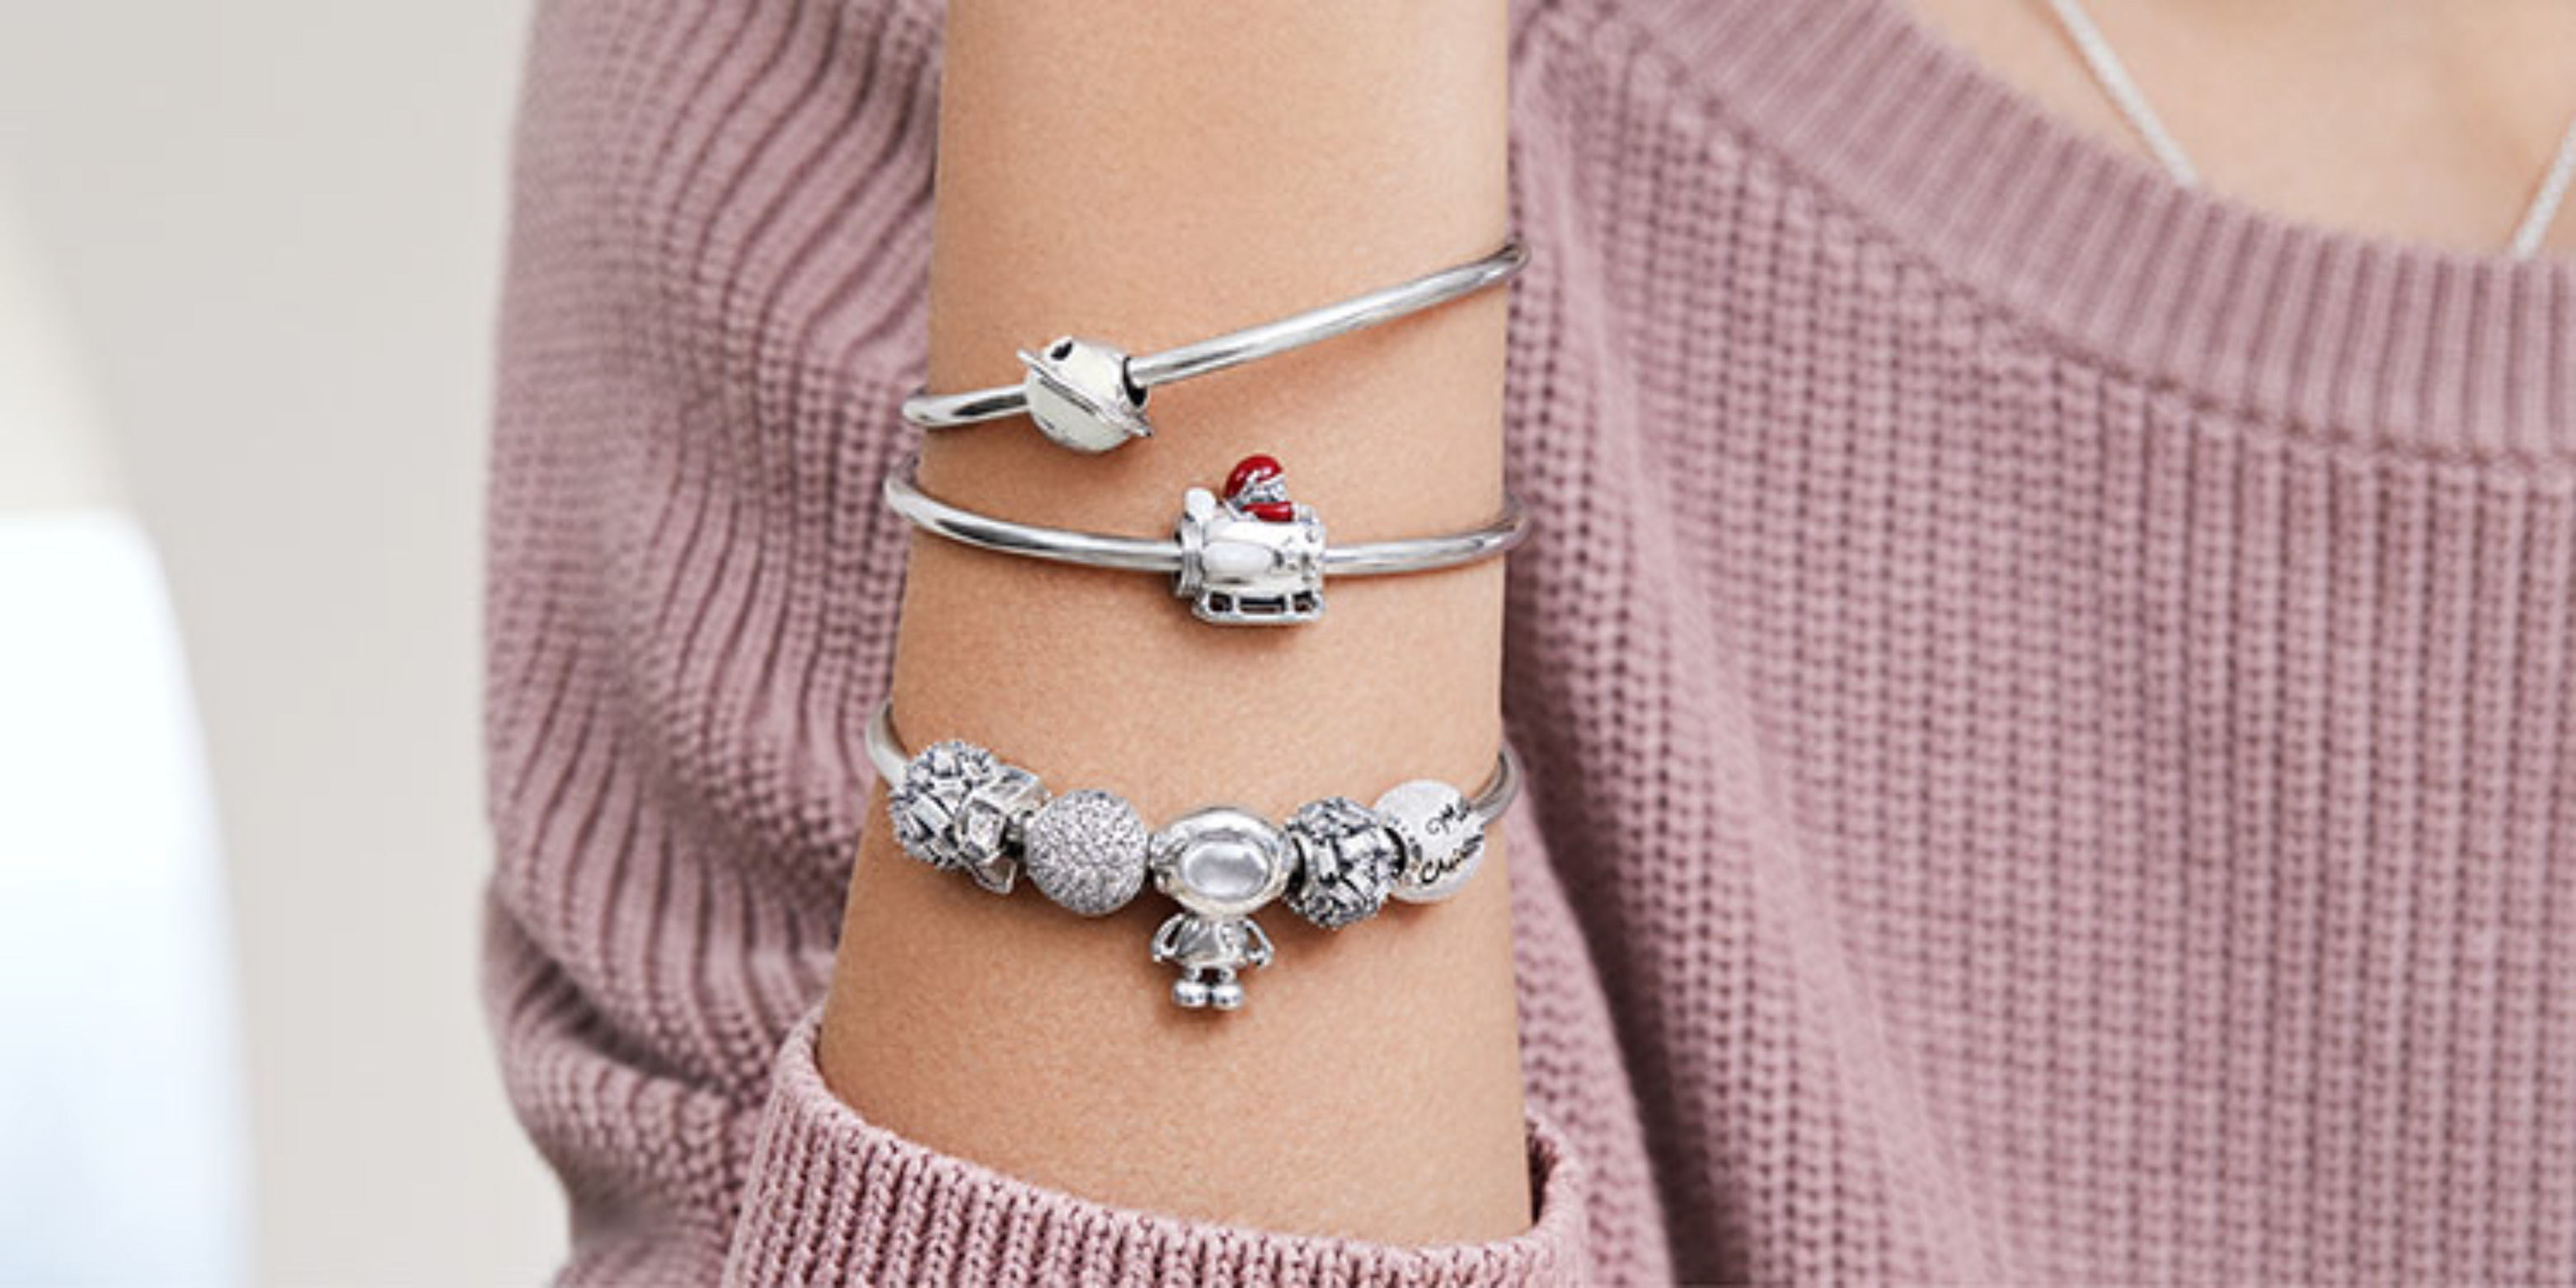 f0804647d215 PANDORA 2018 Winter Collection - The Art of Pandora